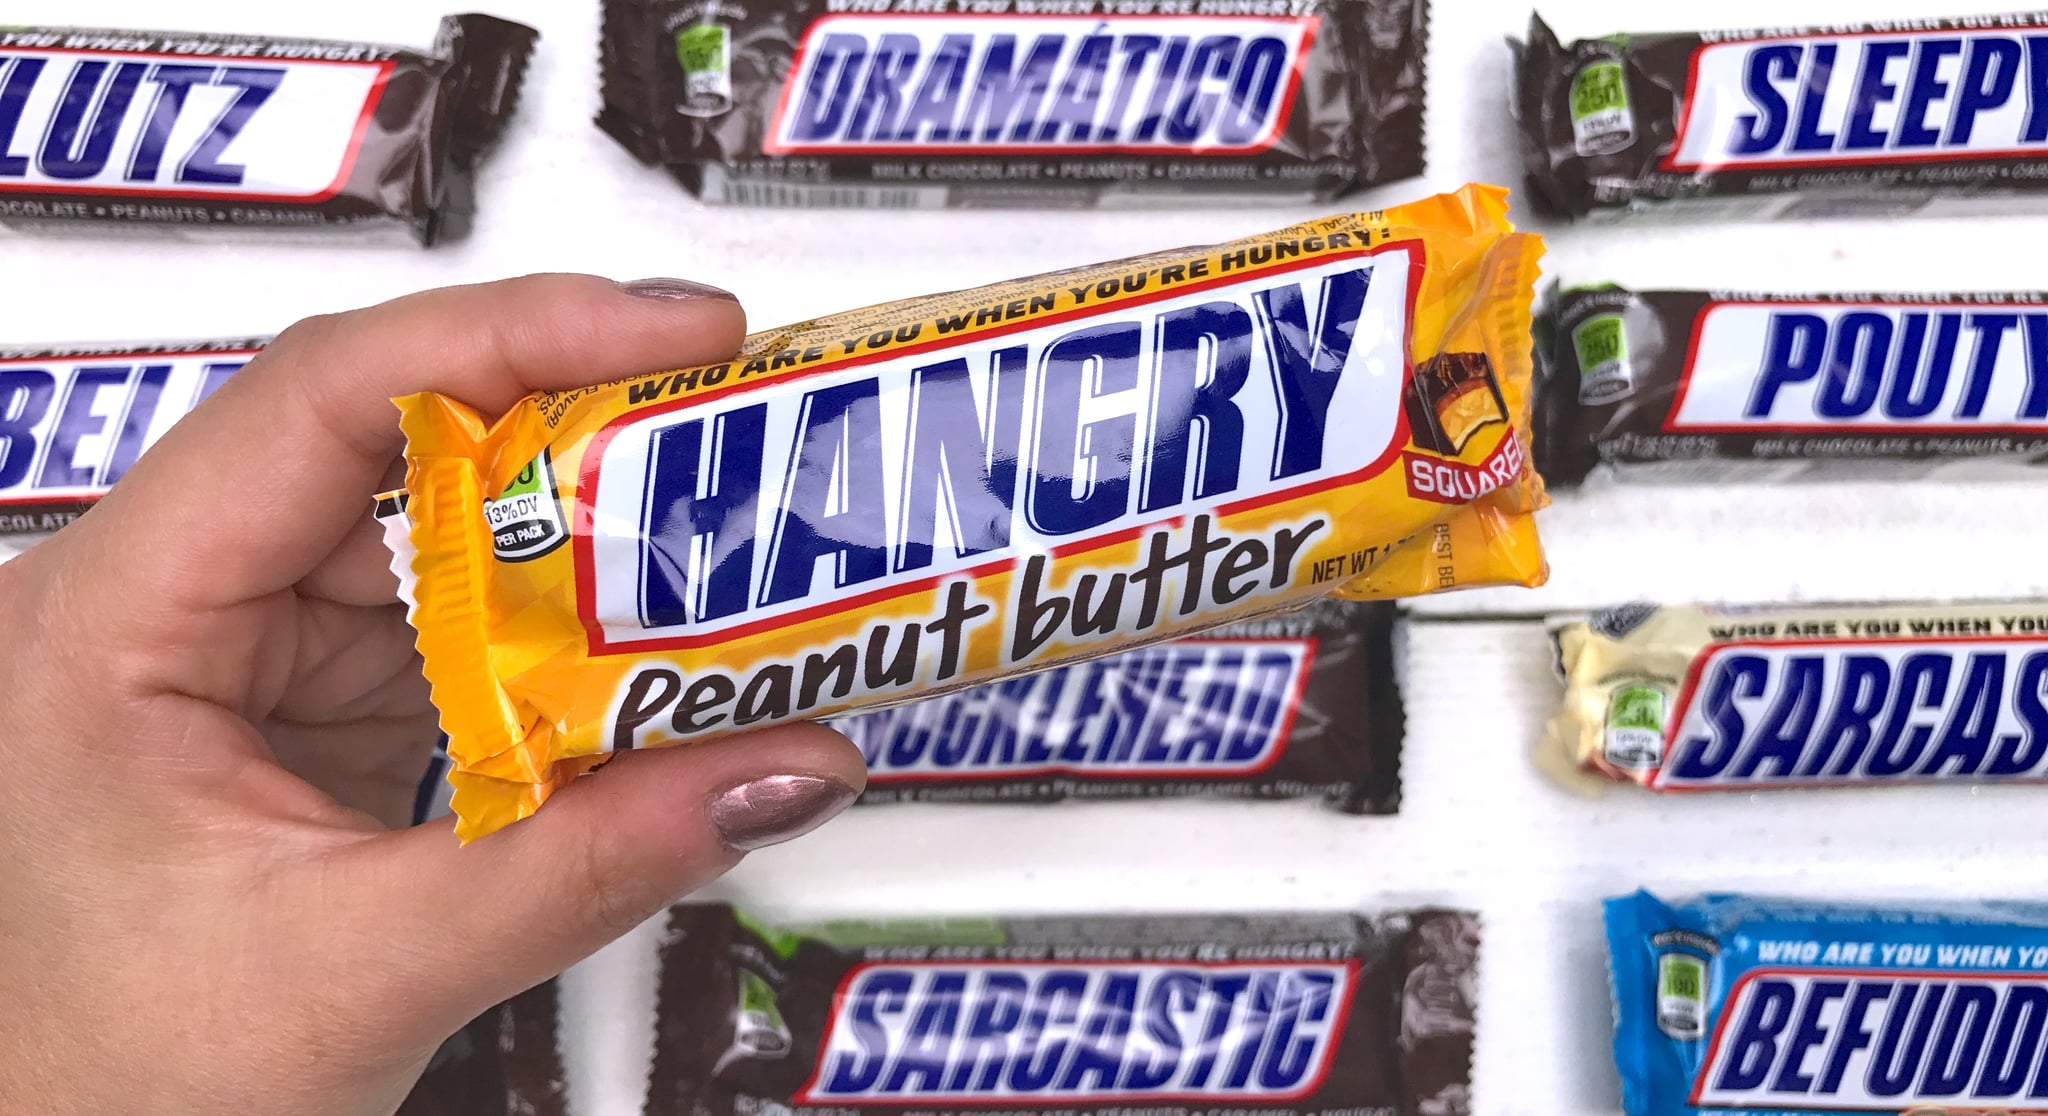 New Snarky Snickers Captions Capture Every Feeling Popsugar Food